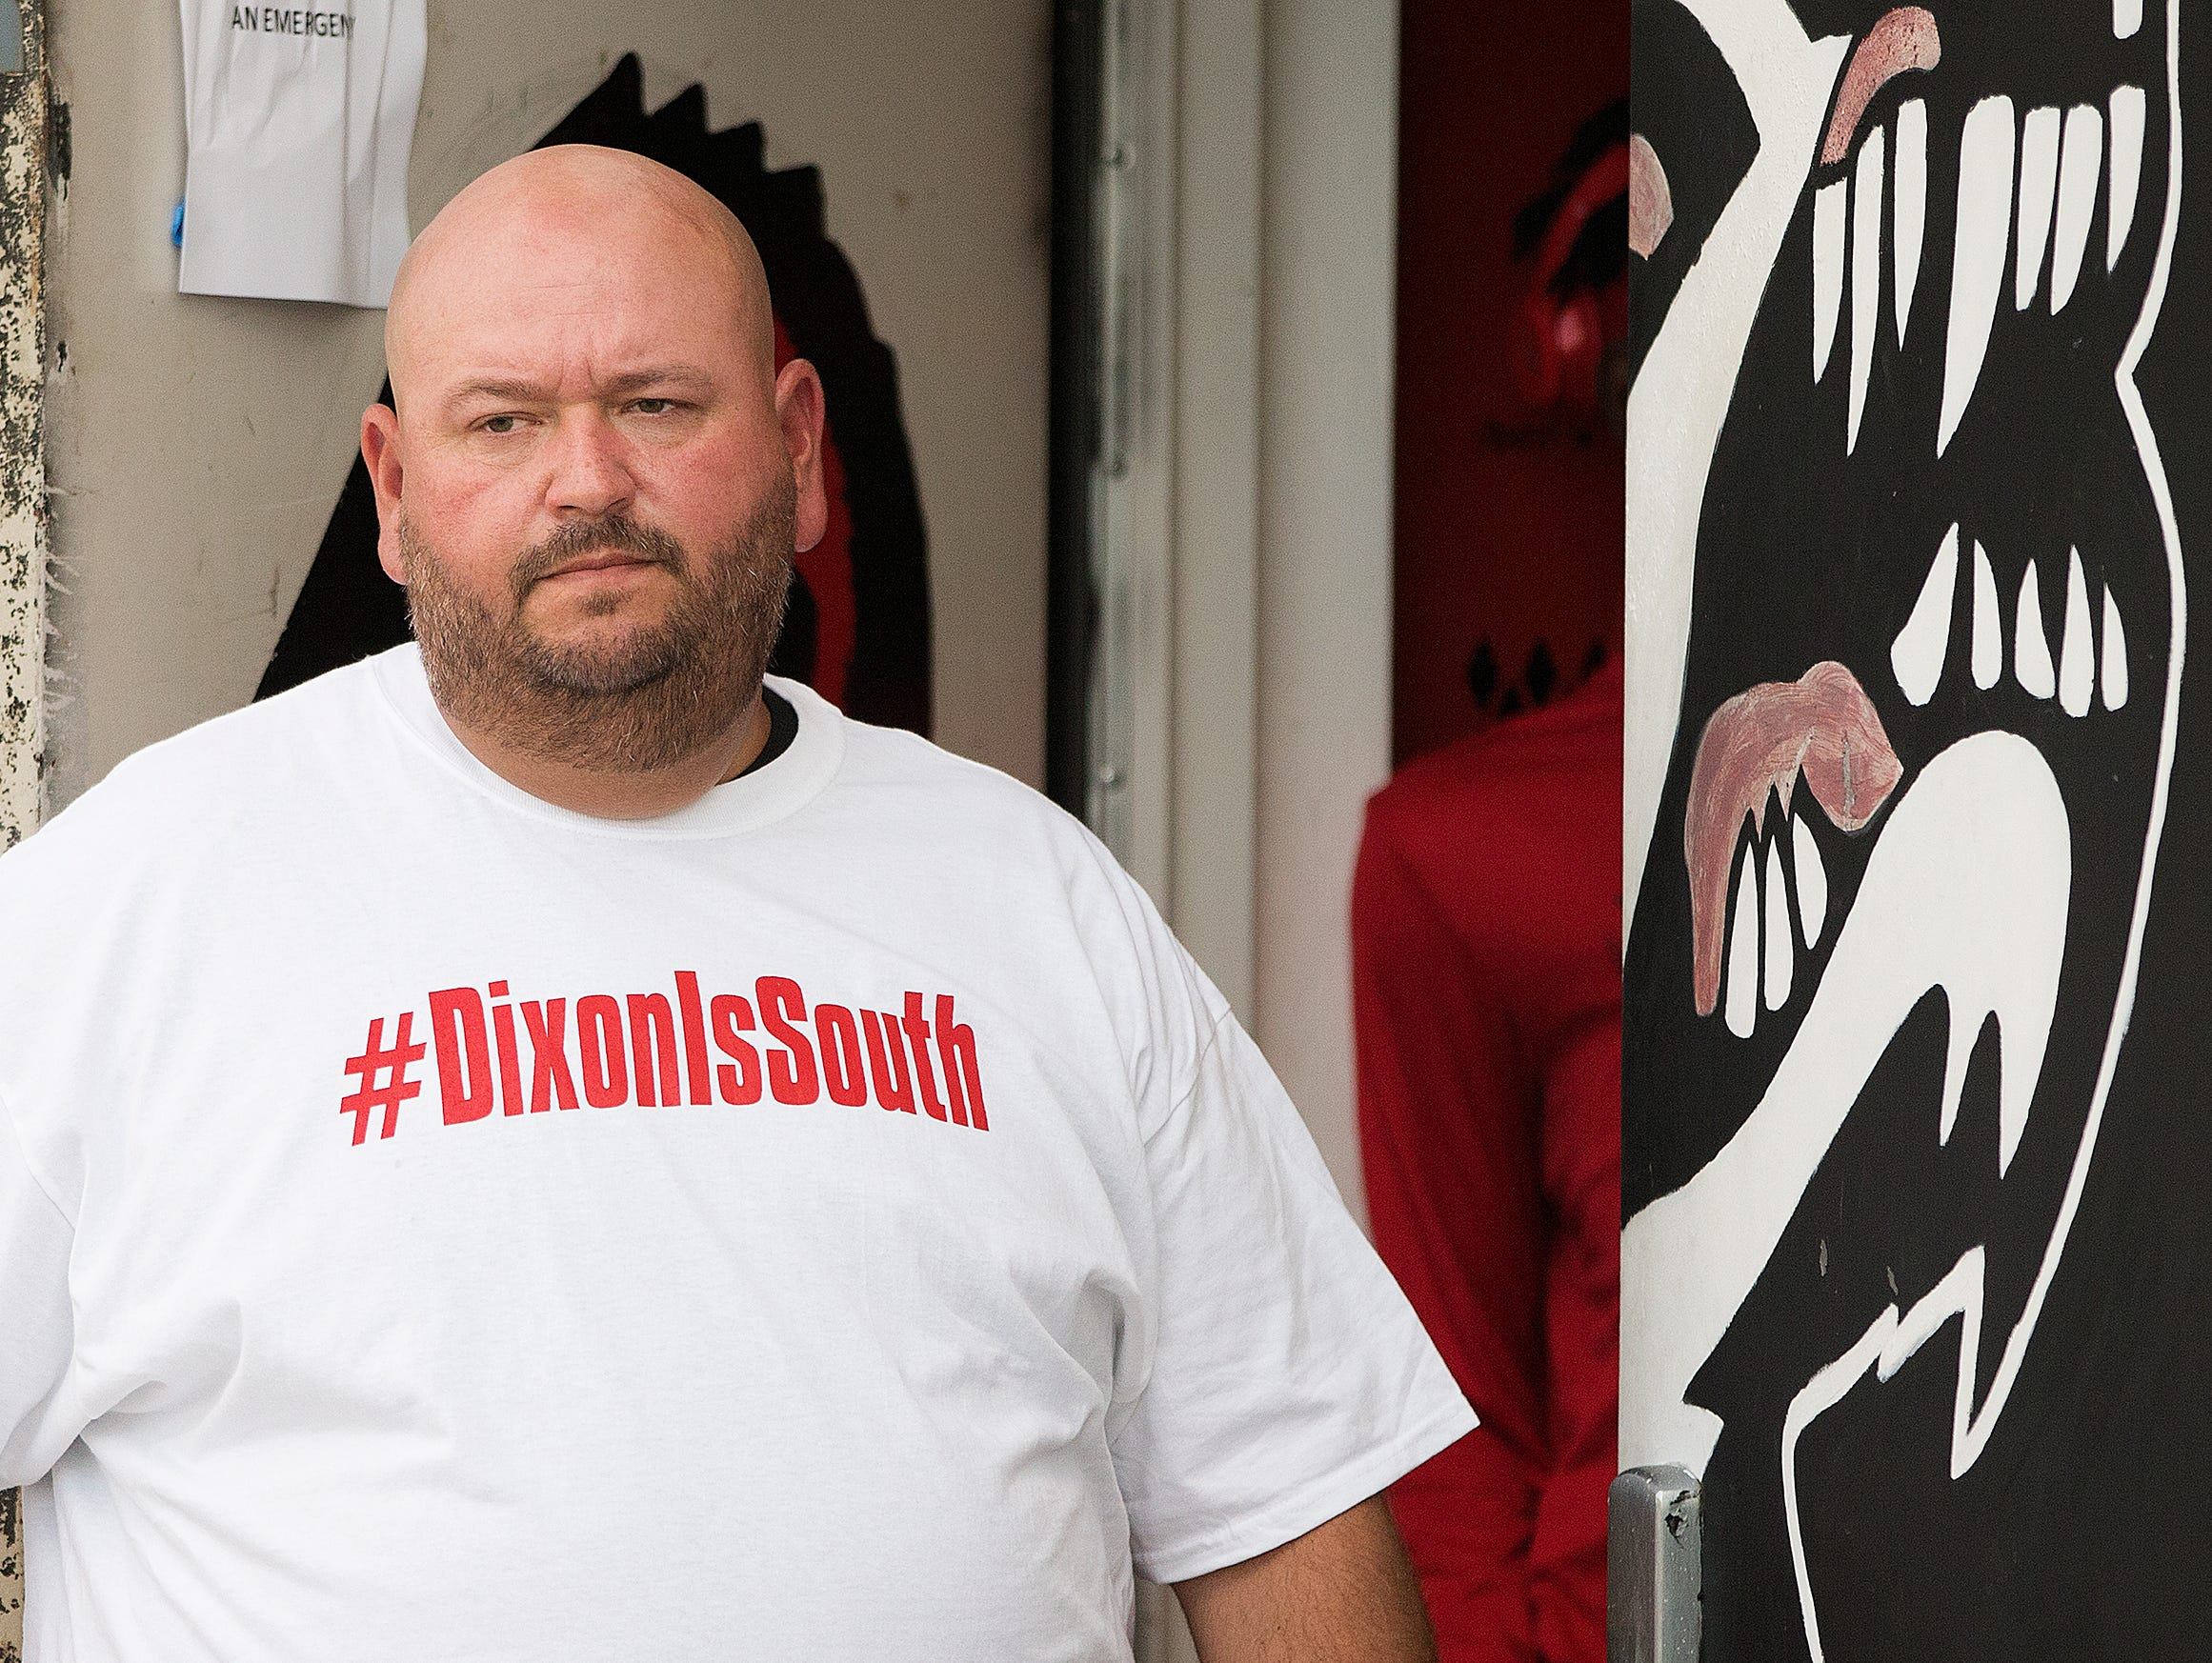 """""""Its been emotional around here,"""" said Matthew Holderfield, South Fort Myers High School's interim head football coach, before Friday's game against Largo at South Fort Myers High School. Holderfield was referring to the team's reaction to the firing of former head coach Anthony Dixon recently. Holderfield, his assistant coaches and fans wore #DixonIsSouth shirts in support of Dixon."""